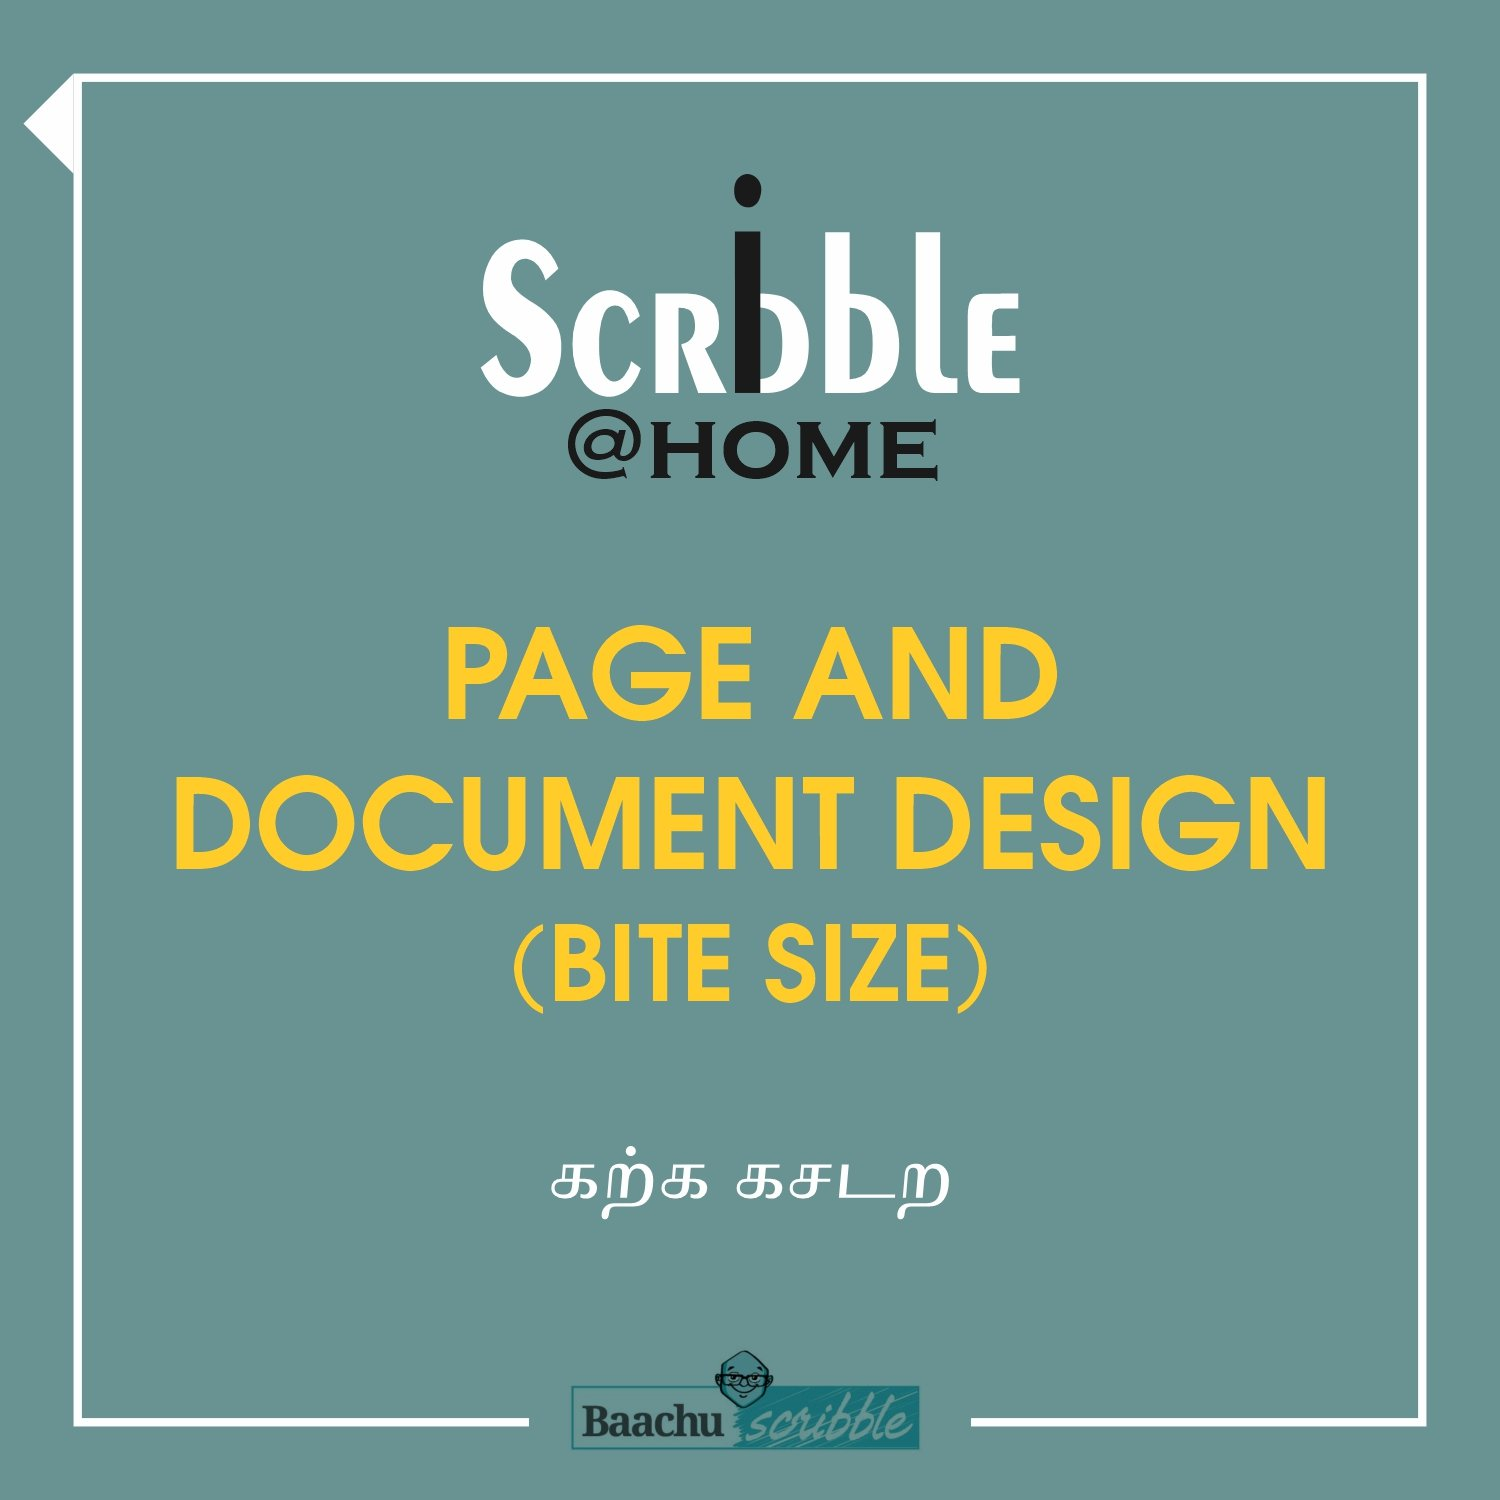 Page and Document Design (Bite Size)